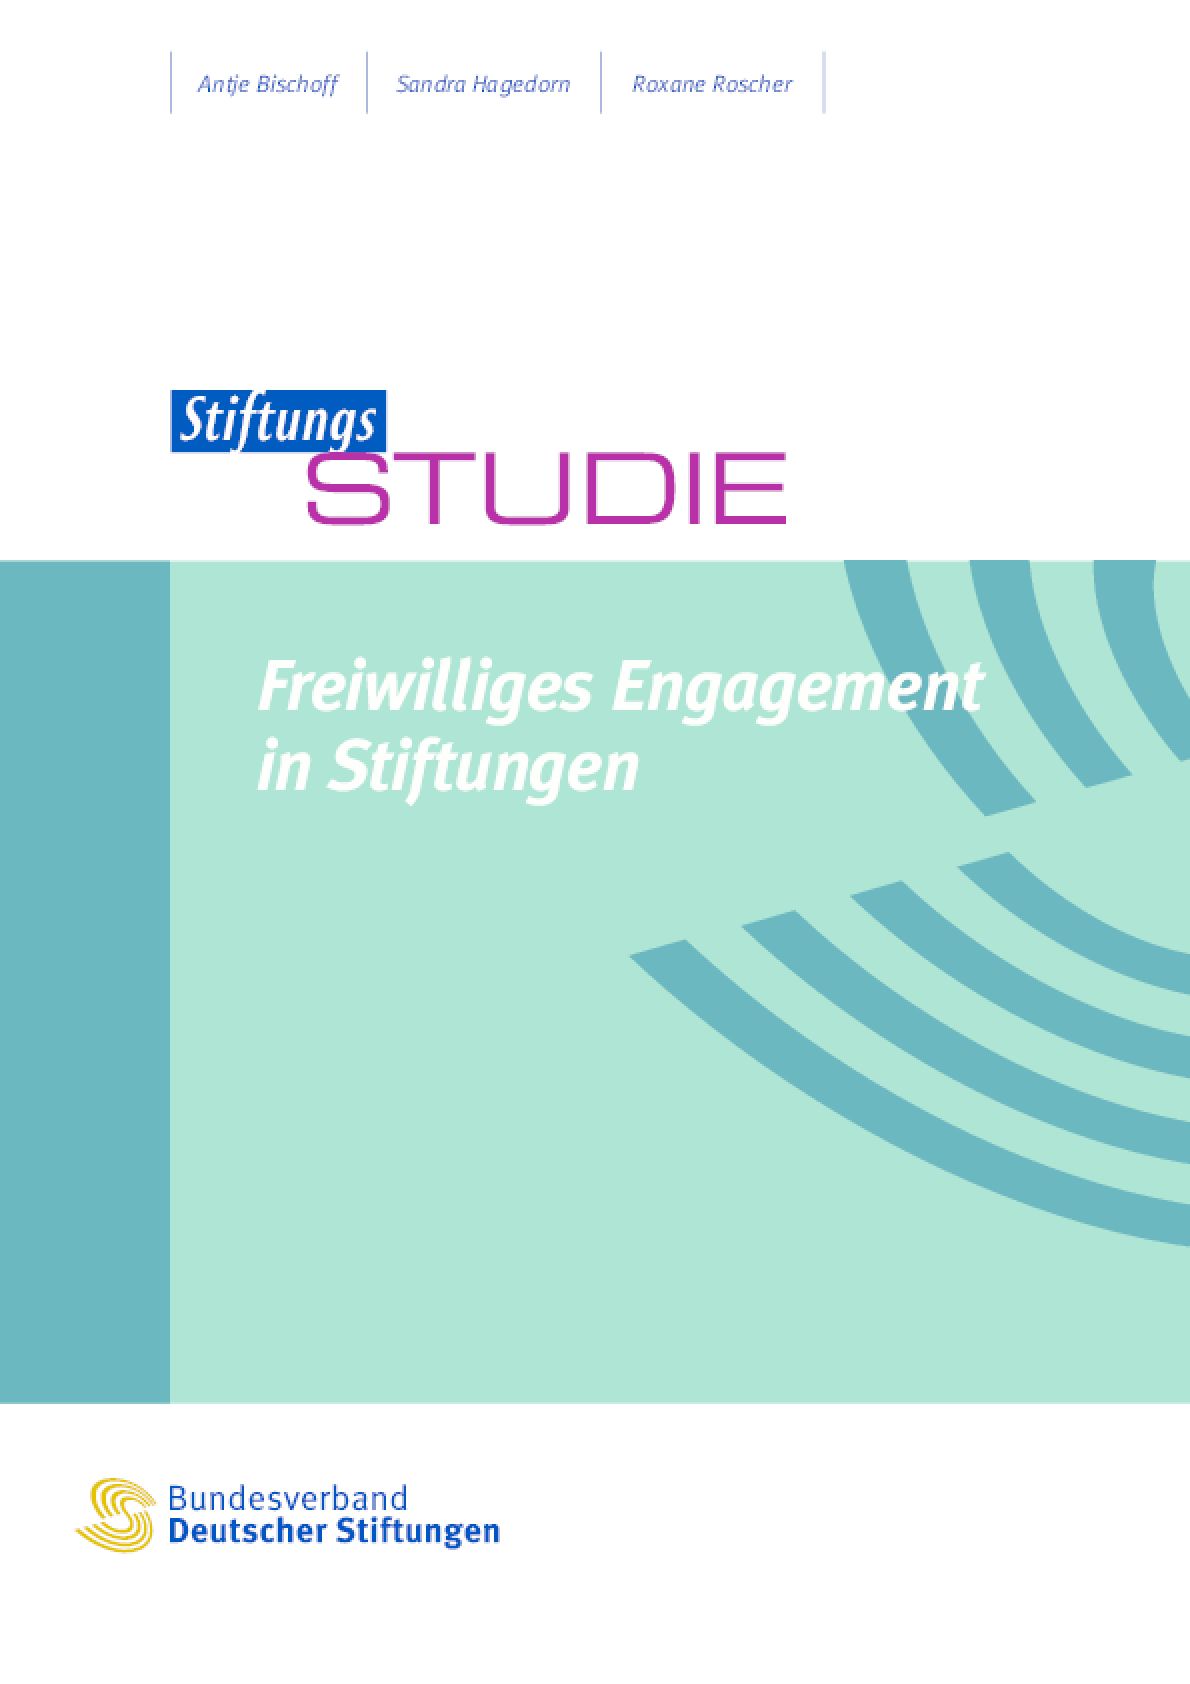 Freiwilliges Engagement in Stiftungen